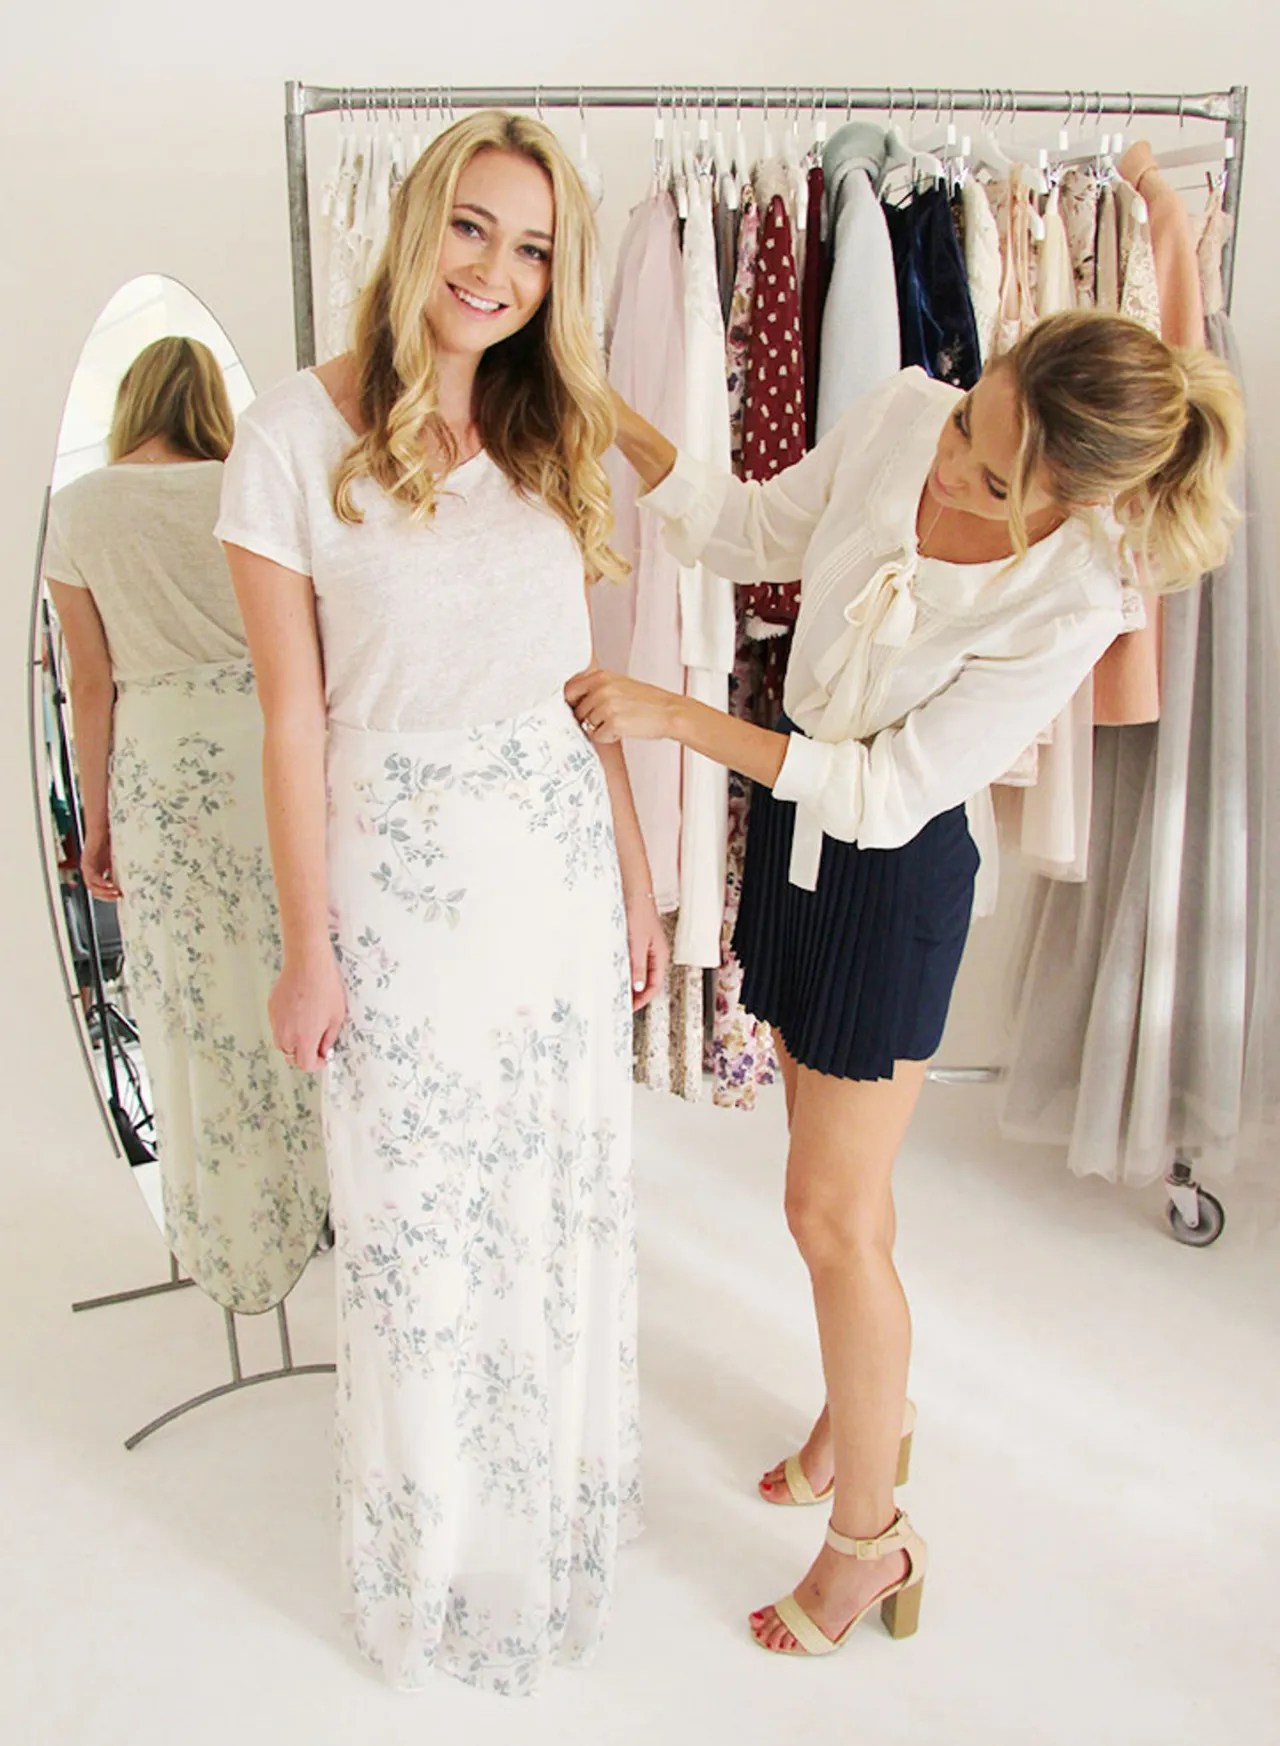 Lauren Conrad Styled 3 Outfits Exclusively For Us